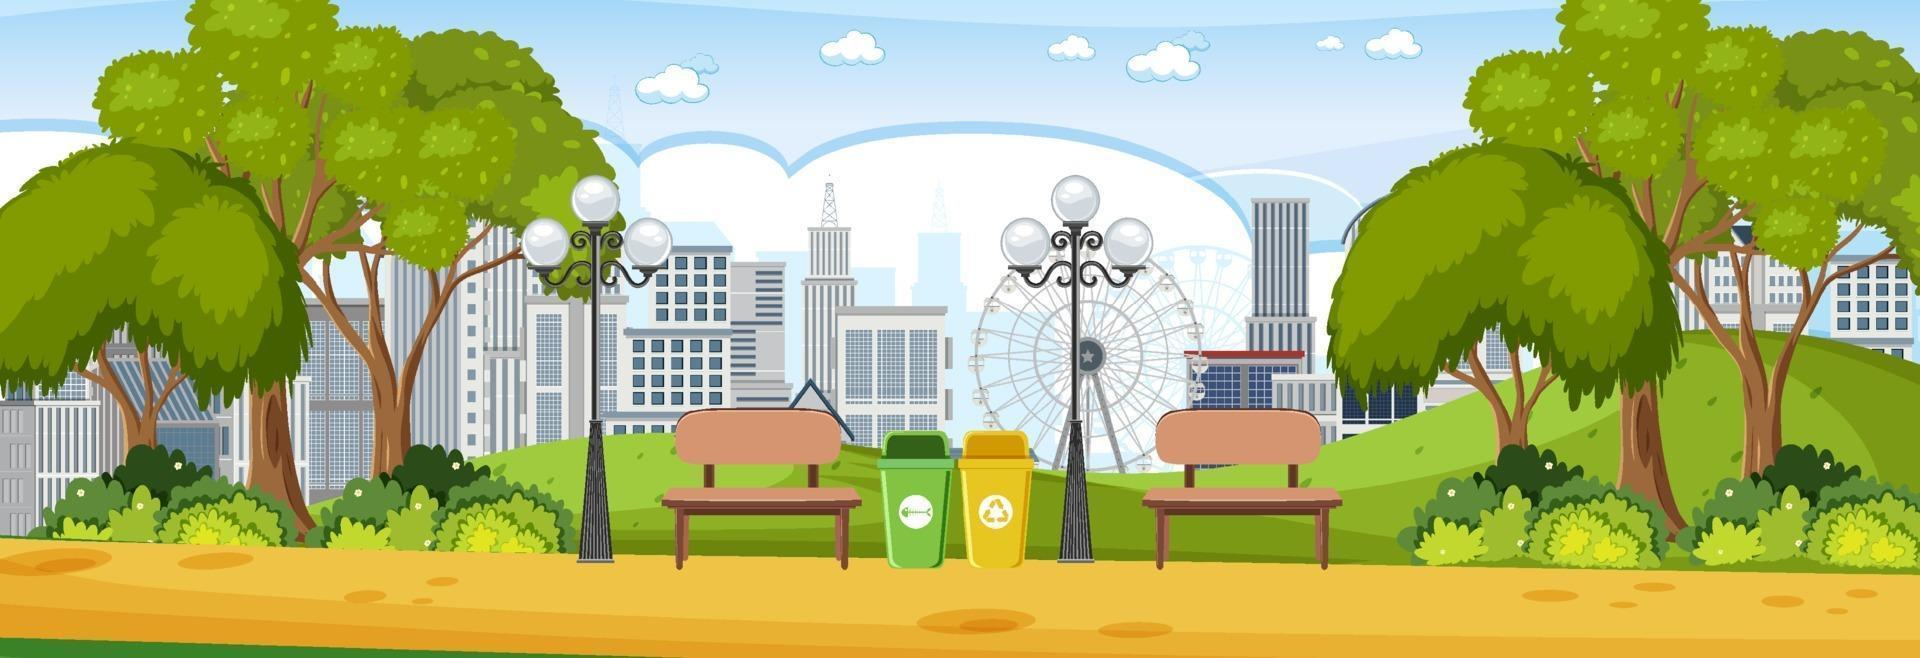 Park horizontal scene at day time with cityscape background vector